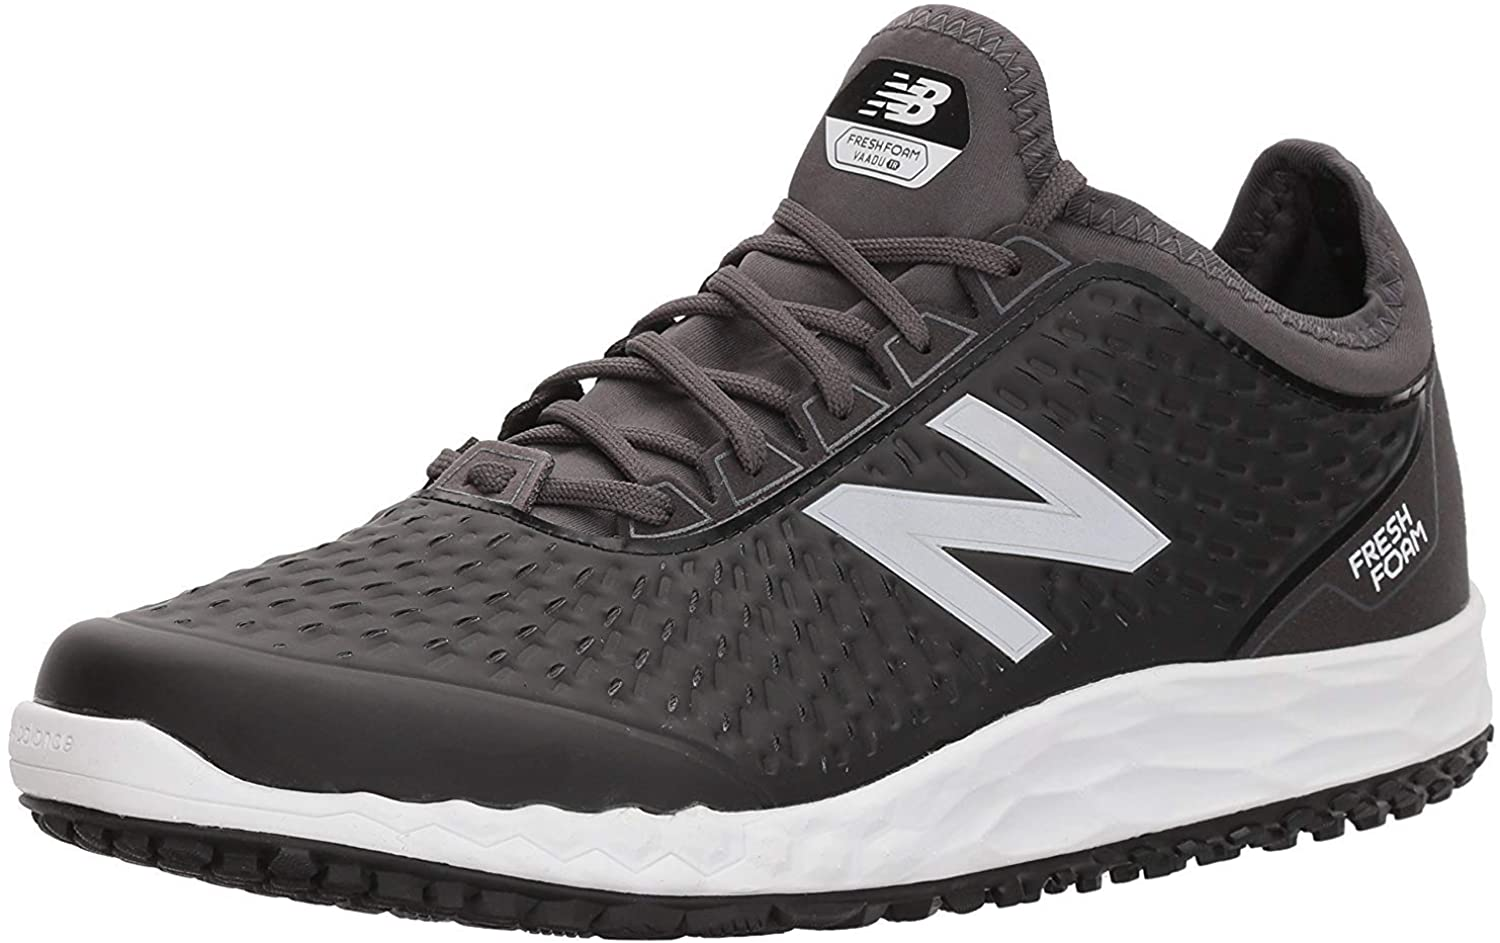 New Balance Men's Vado V1 Fresh Foam Cross, Black-White-Magnet, Size 11.5